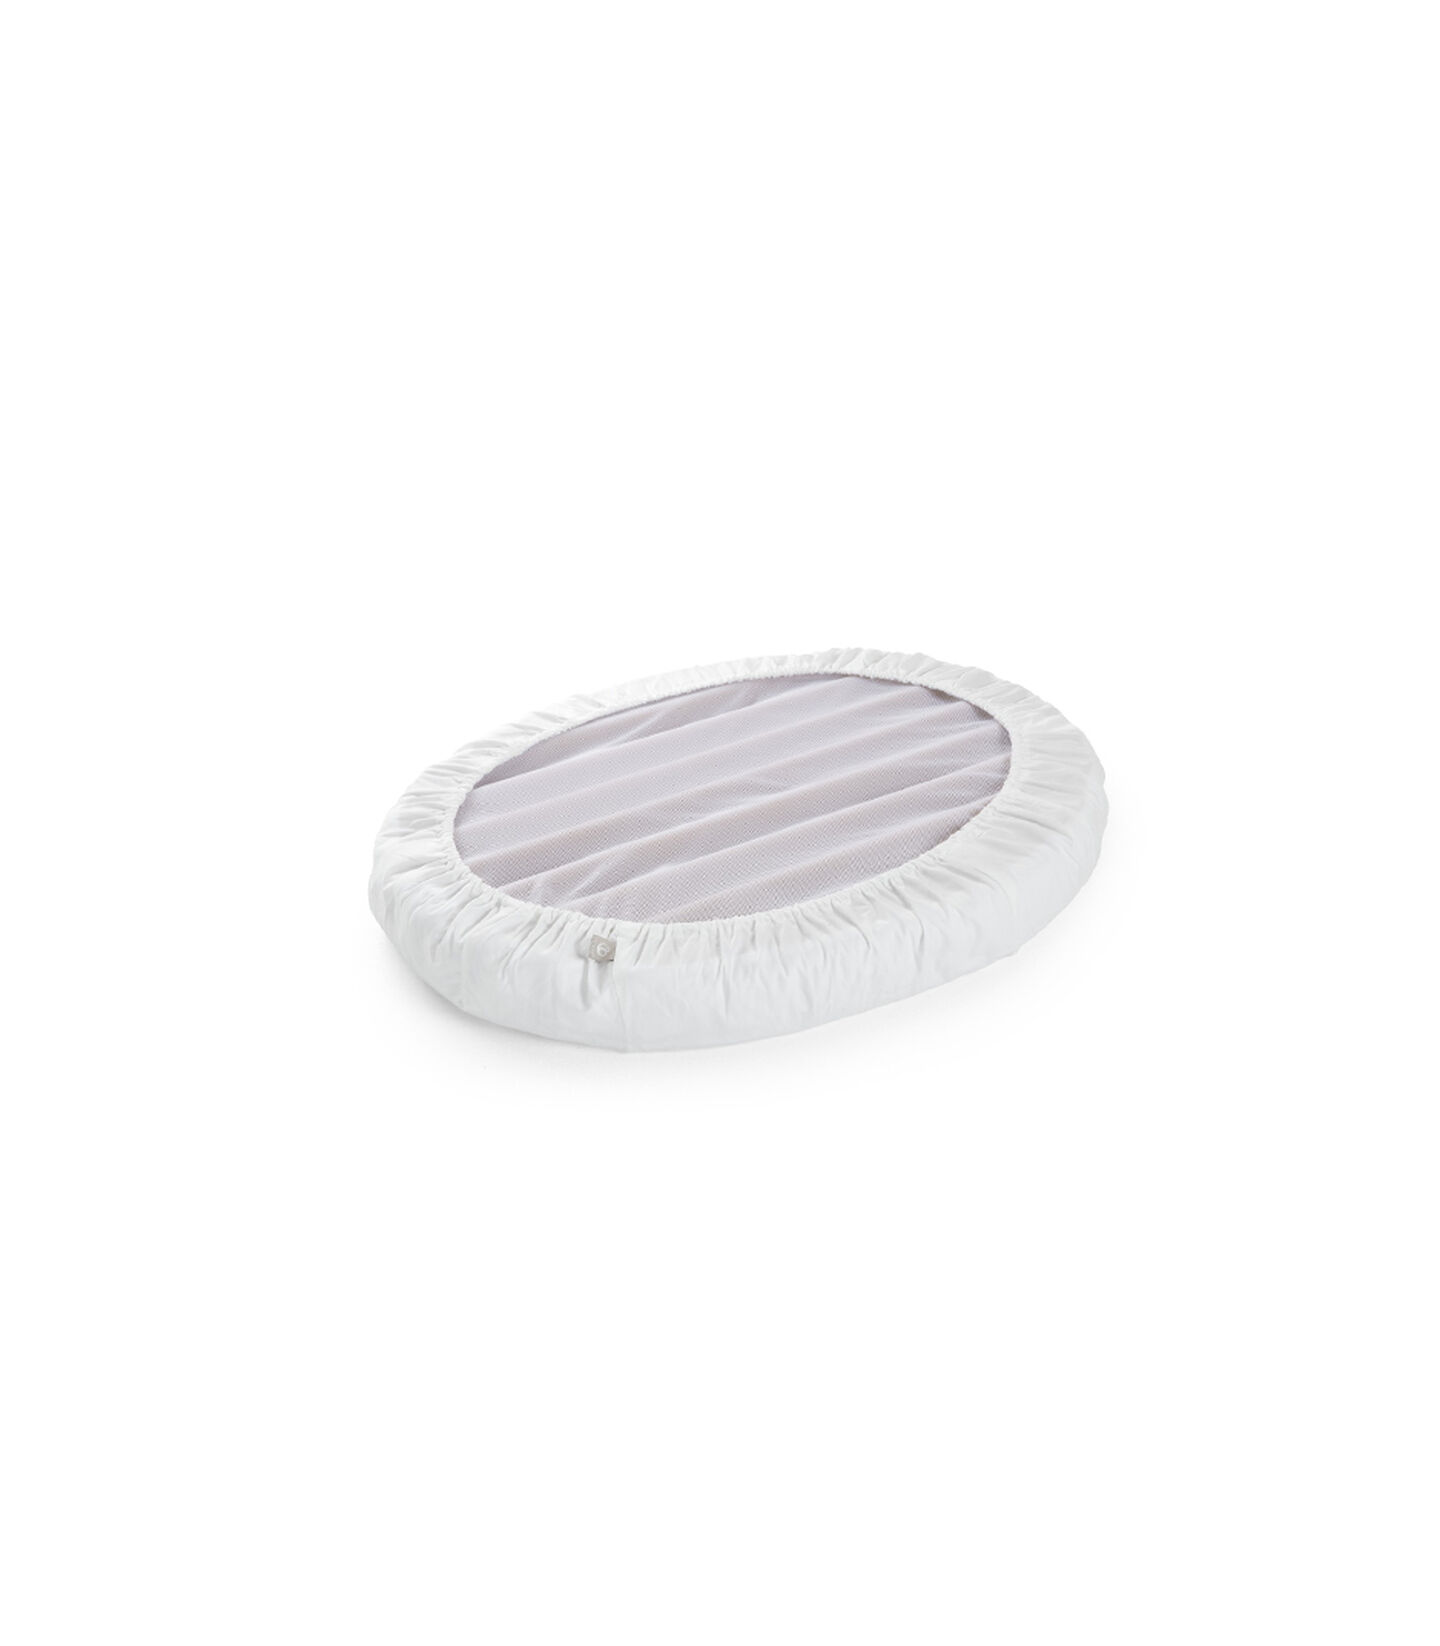 Stokke® Sleepi™ Mini Fitted Sheet. White. Bottom side.